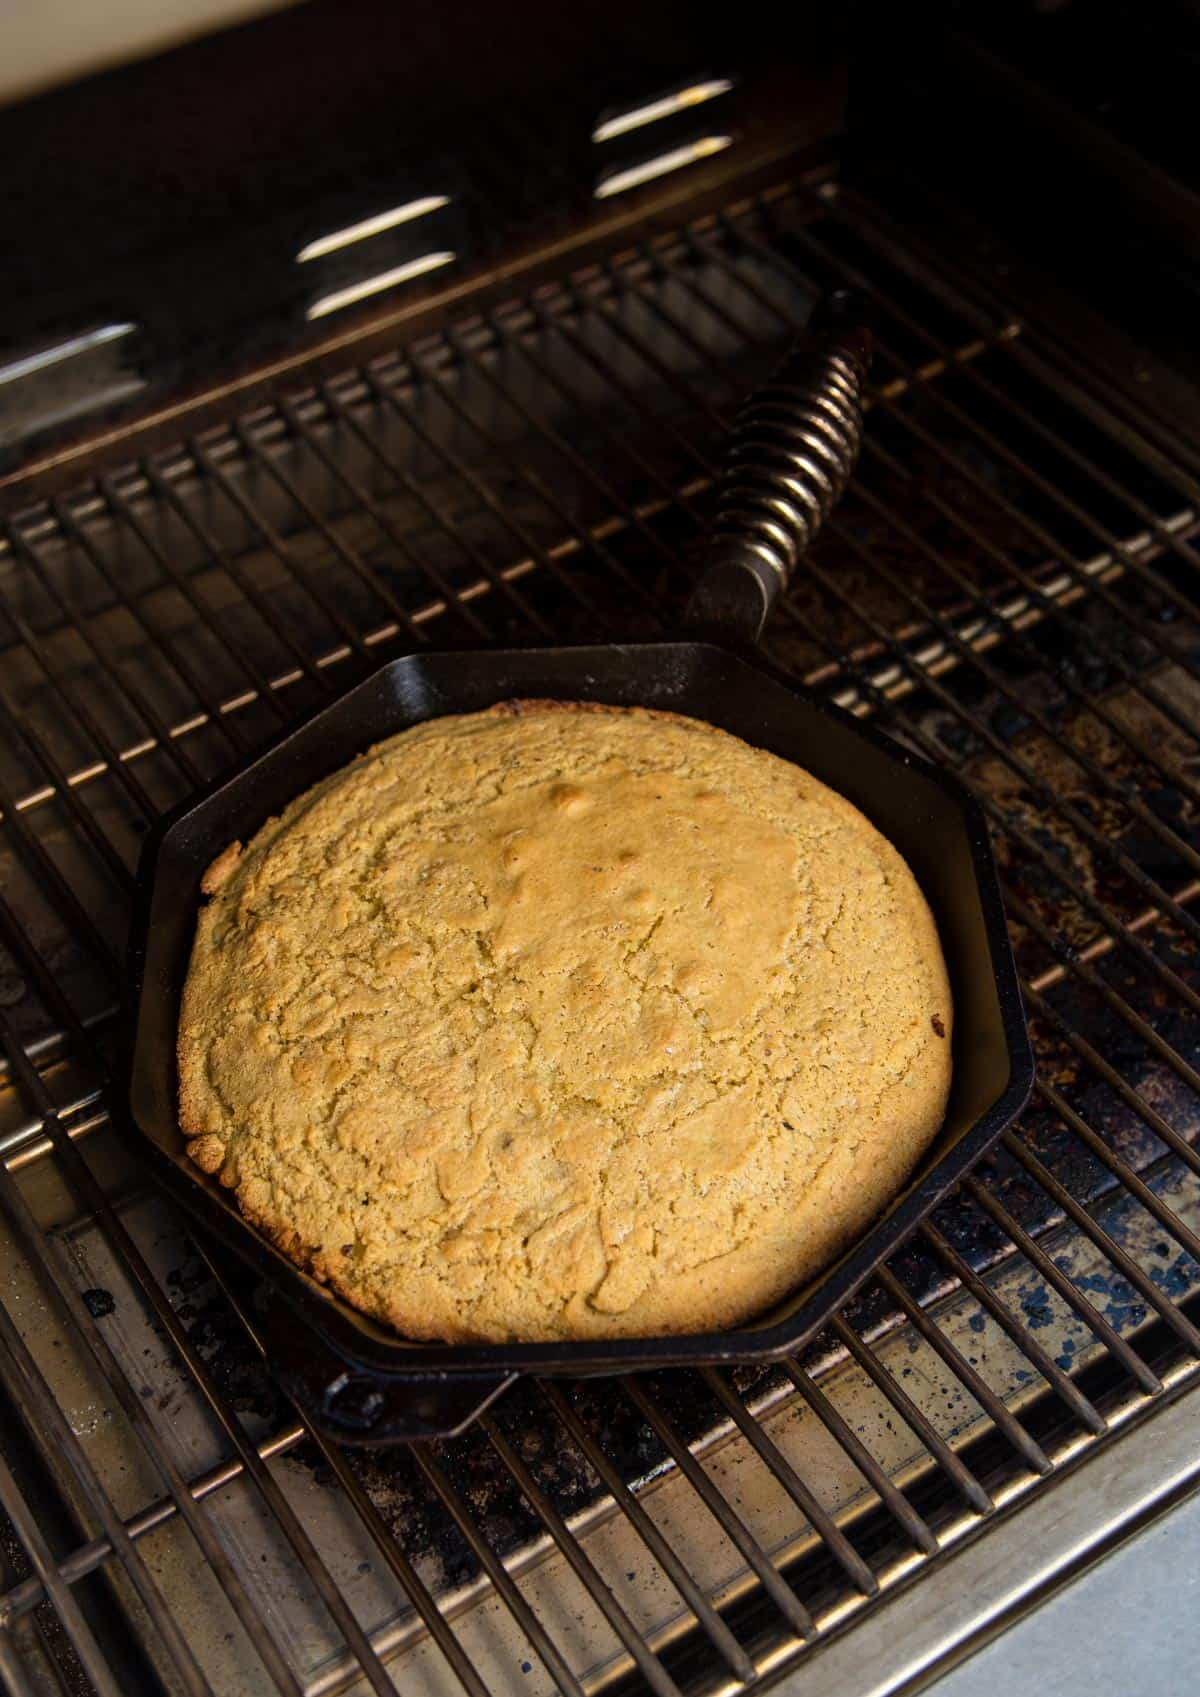 Cornbread cooked in the grill in a cast iron pan